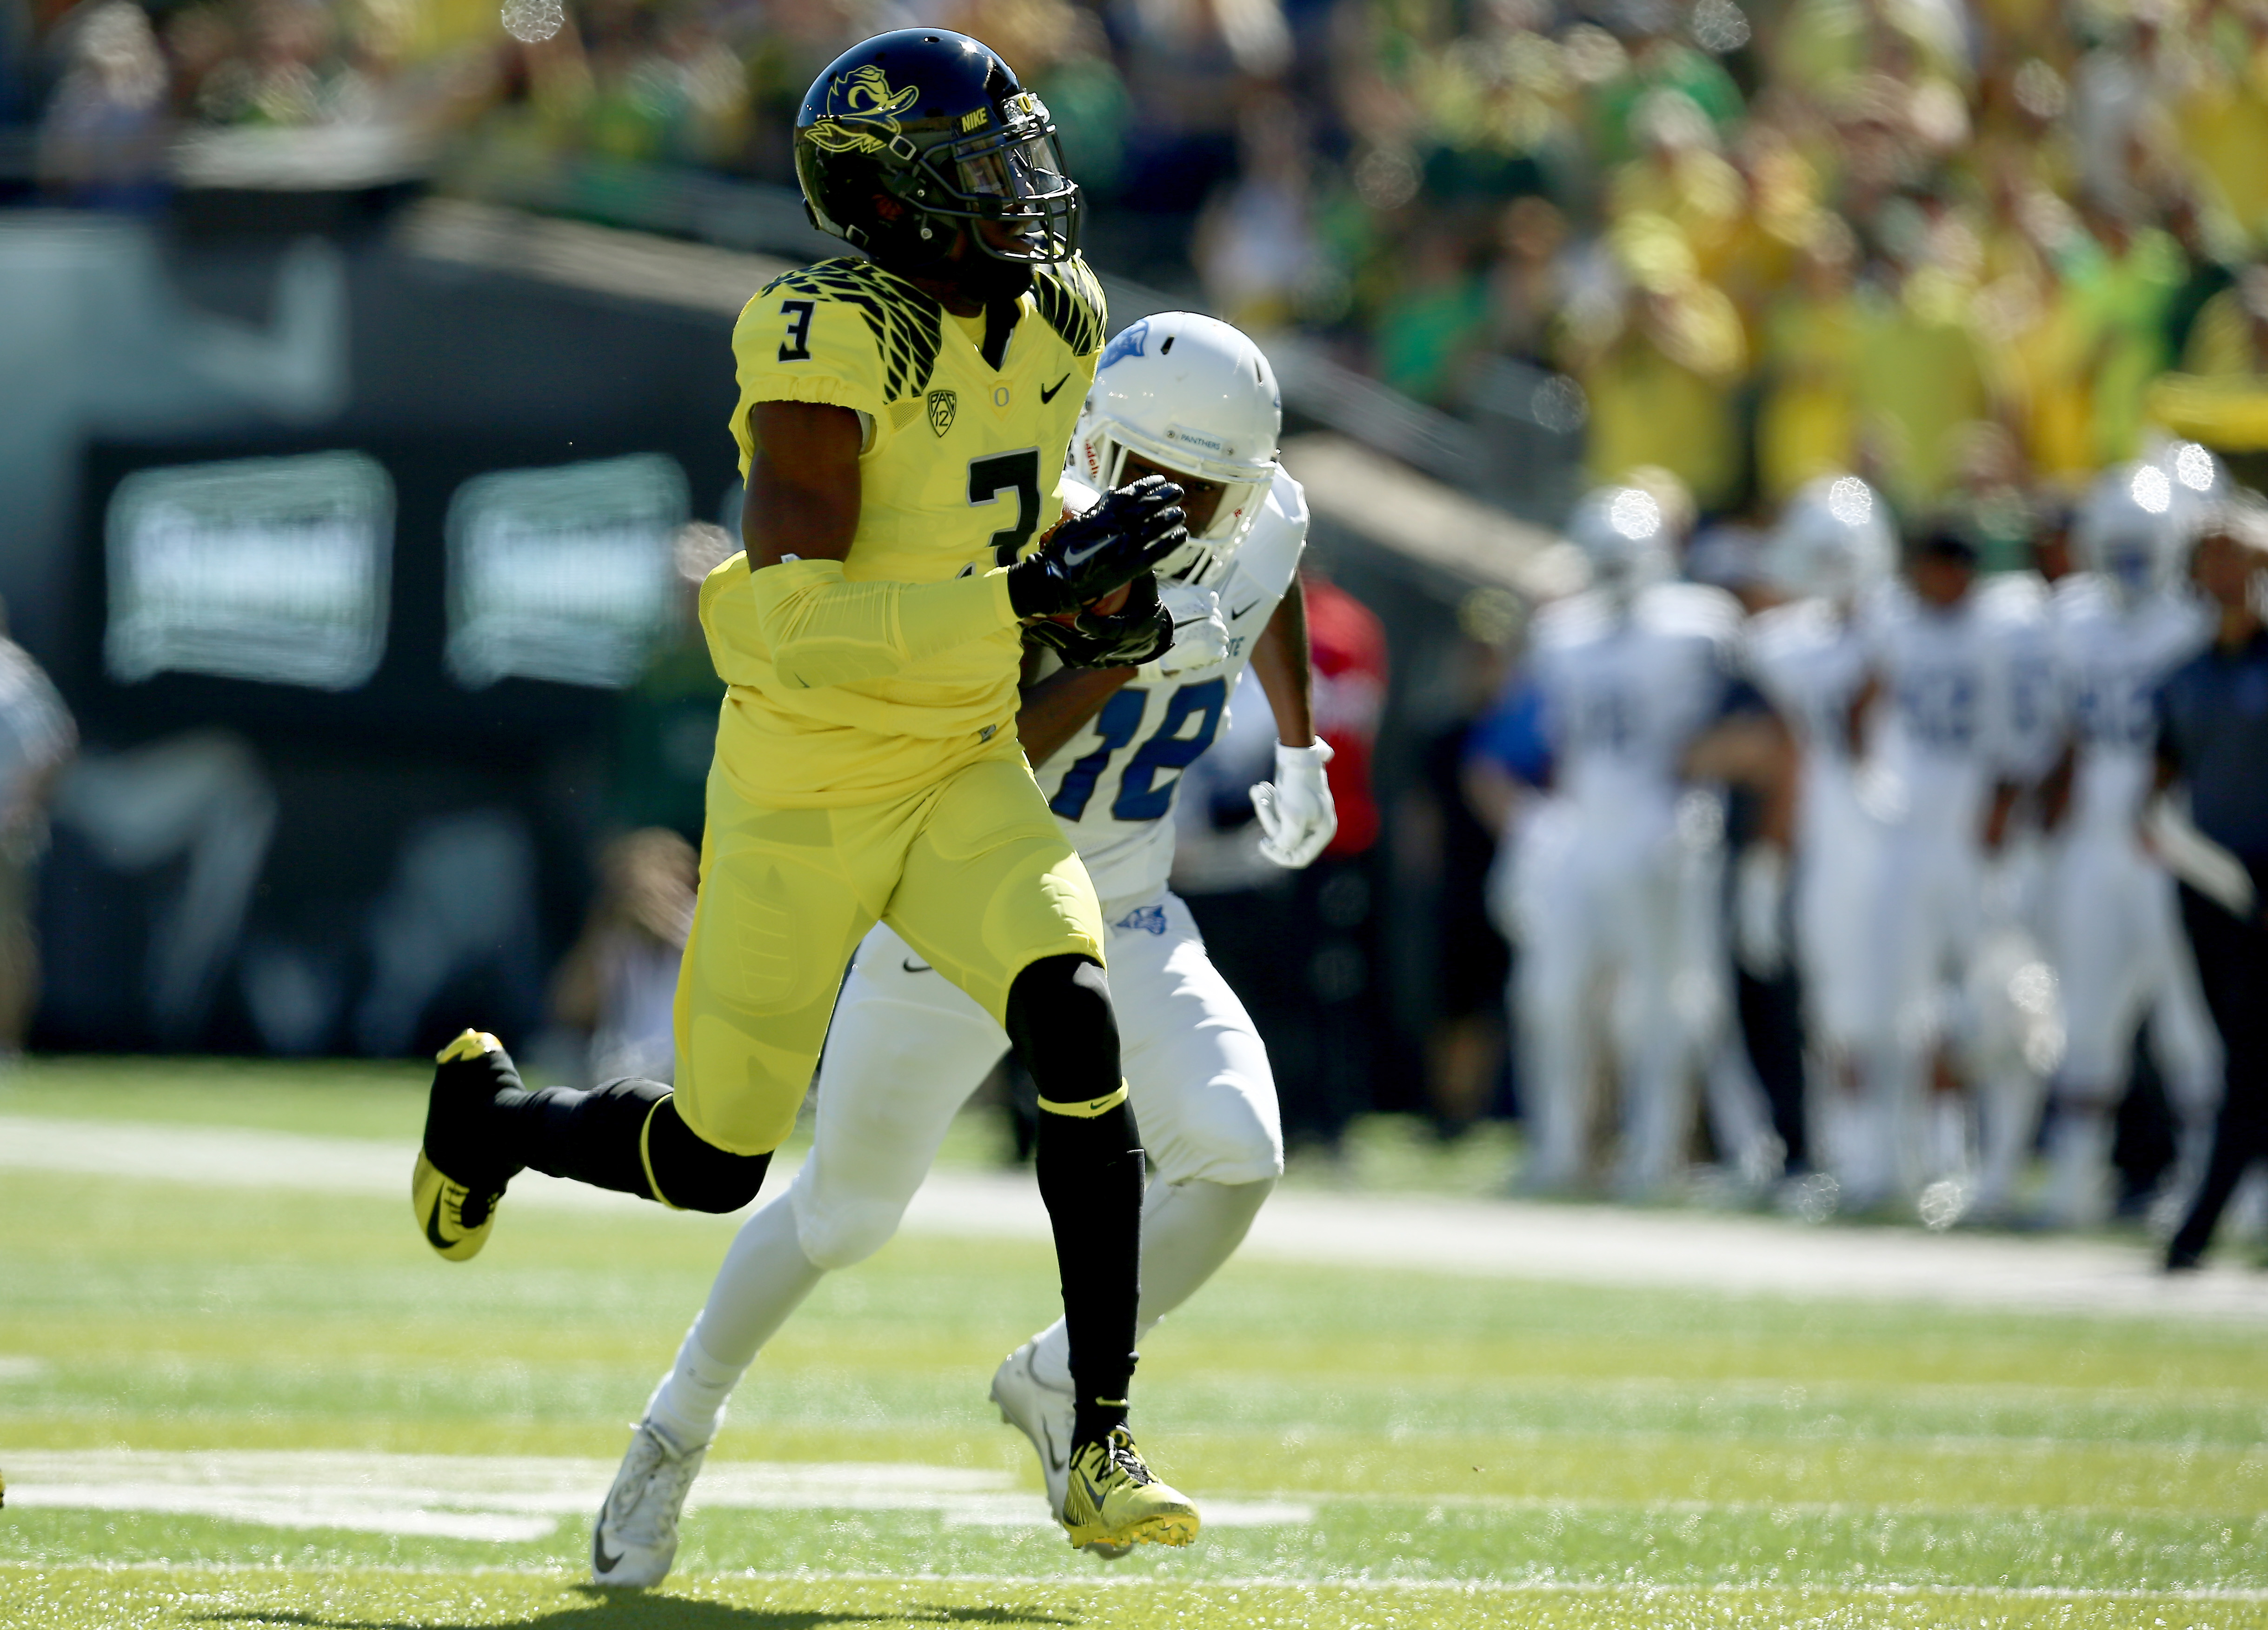 Oregon safety Tyree Robinson (3) returns an interception during the first quarter of an NCAA college football game against Georgia State, Saturday, Sept. 19, 2015, in Eugene, Ore. (AP Photo/Ryan Kang)